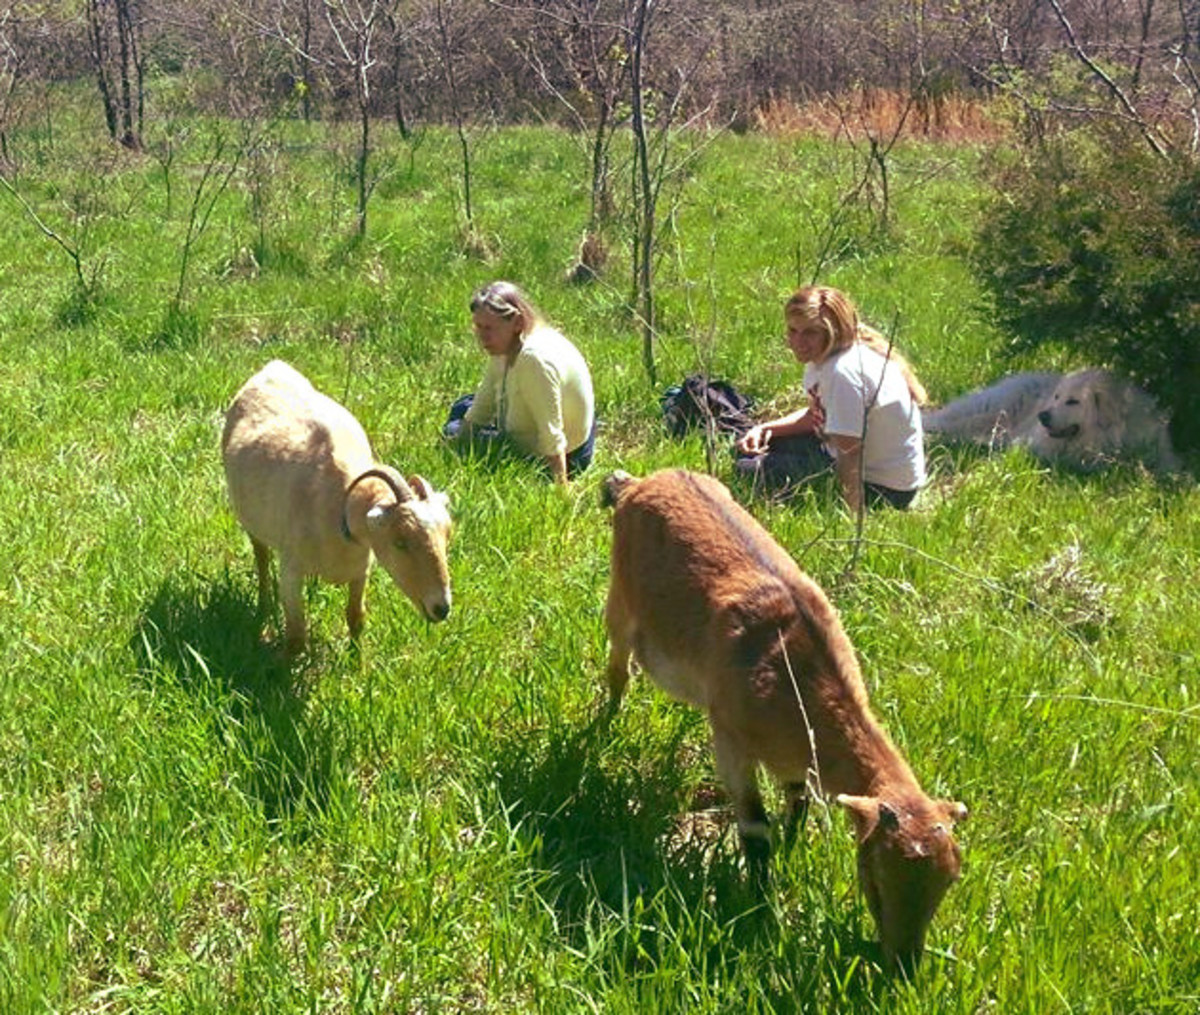 Pasturing the goats in spring. I am the old lady. The pretty one is my daughter. The dog is part Great Pyr and part Akbash and is a herding dog. His name is Boaz. The (mostly) white goat is named Winnie, but I can't remember the other goat's name.